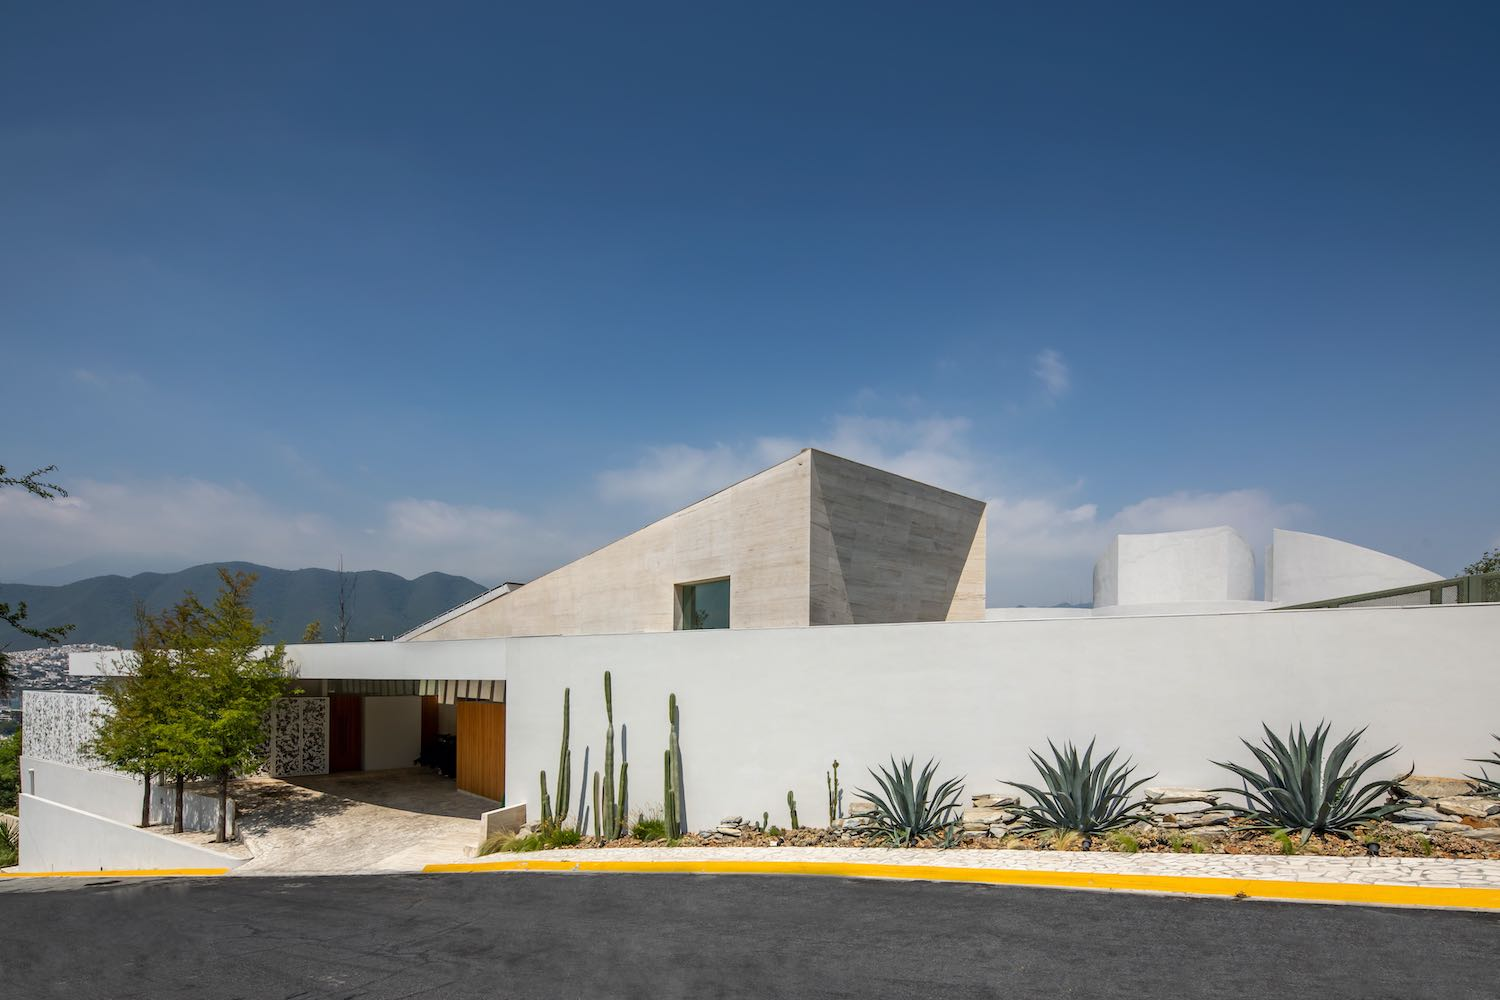 The House of Tubes in Monterrey, Mexico by Enrique Leal - Stato by Grupo Urban